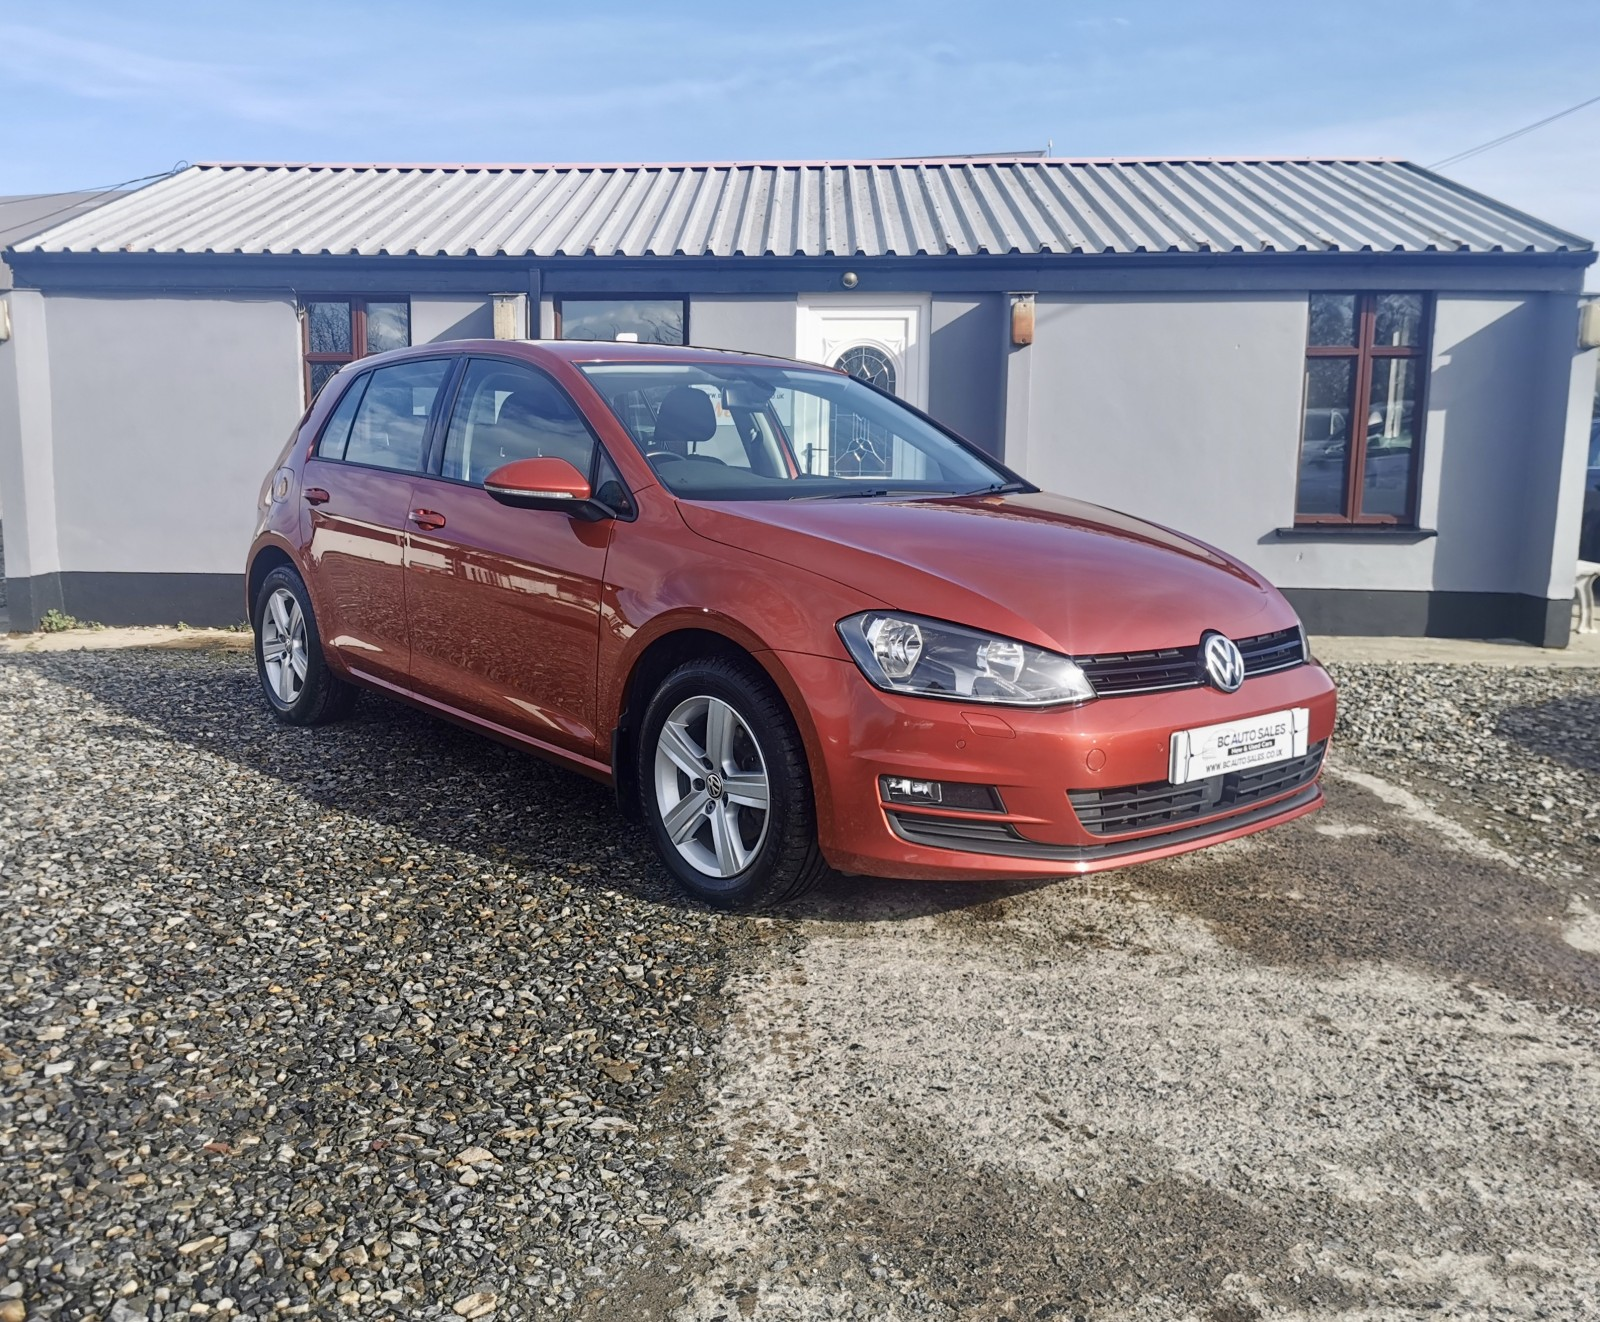 2016 Volkswagen Golf MATCH EDITION TDI BMT Diesel Manual – BC Autosales 17A Airfield Road, Eglinton, Londonderry BT47 3PZ, UK